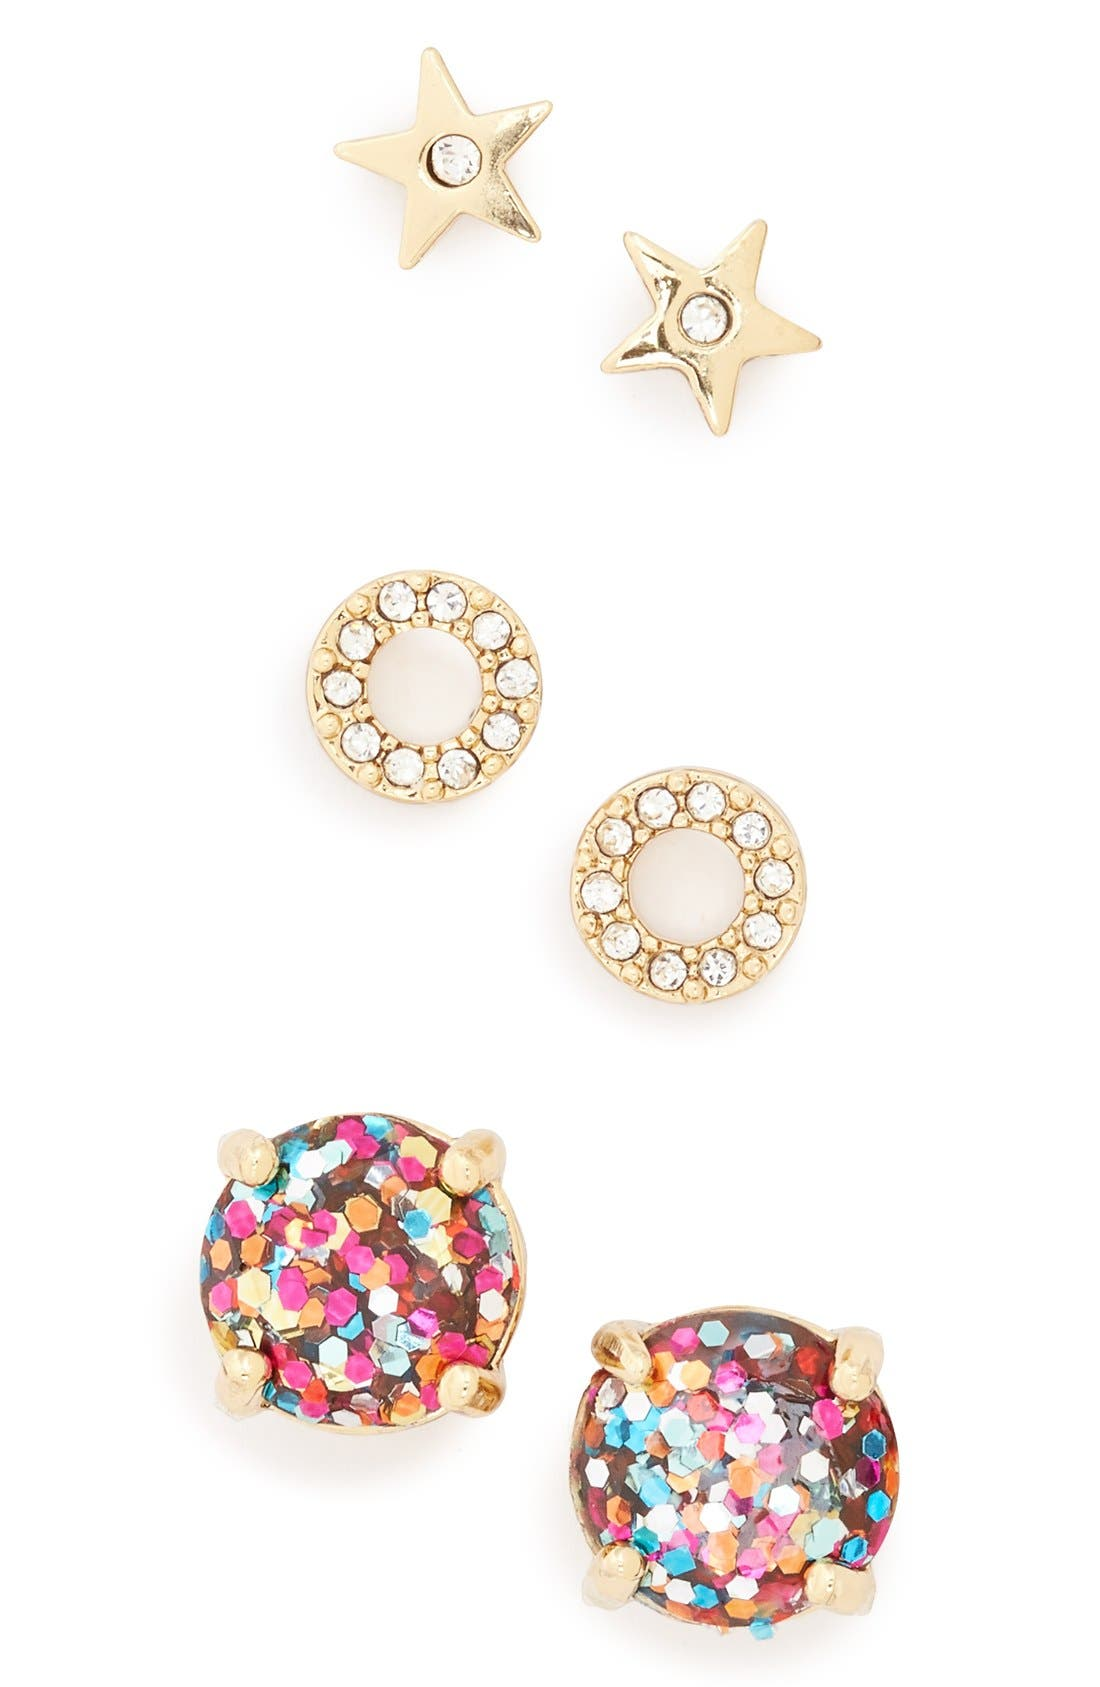 Alternate Image 1 Selected - kate spade new york star & round stud earrings (Set of 3)